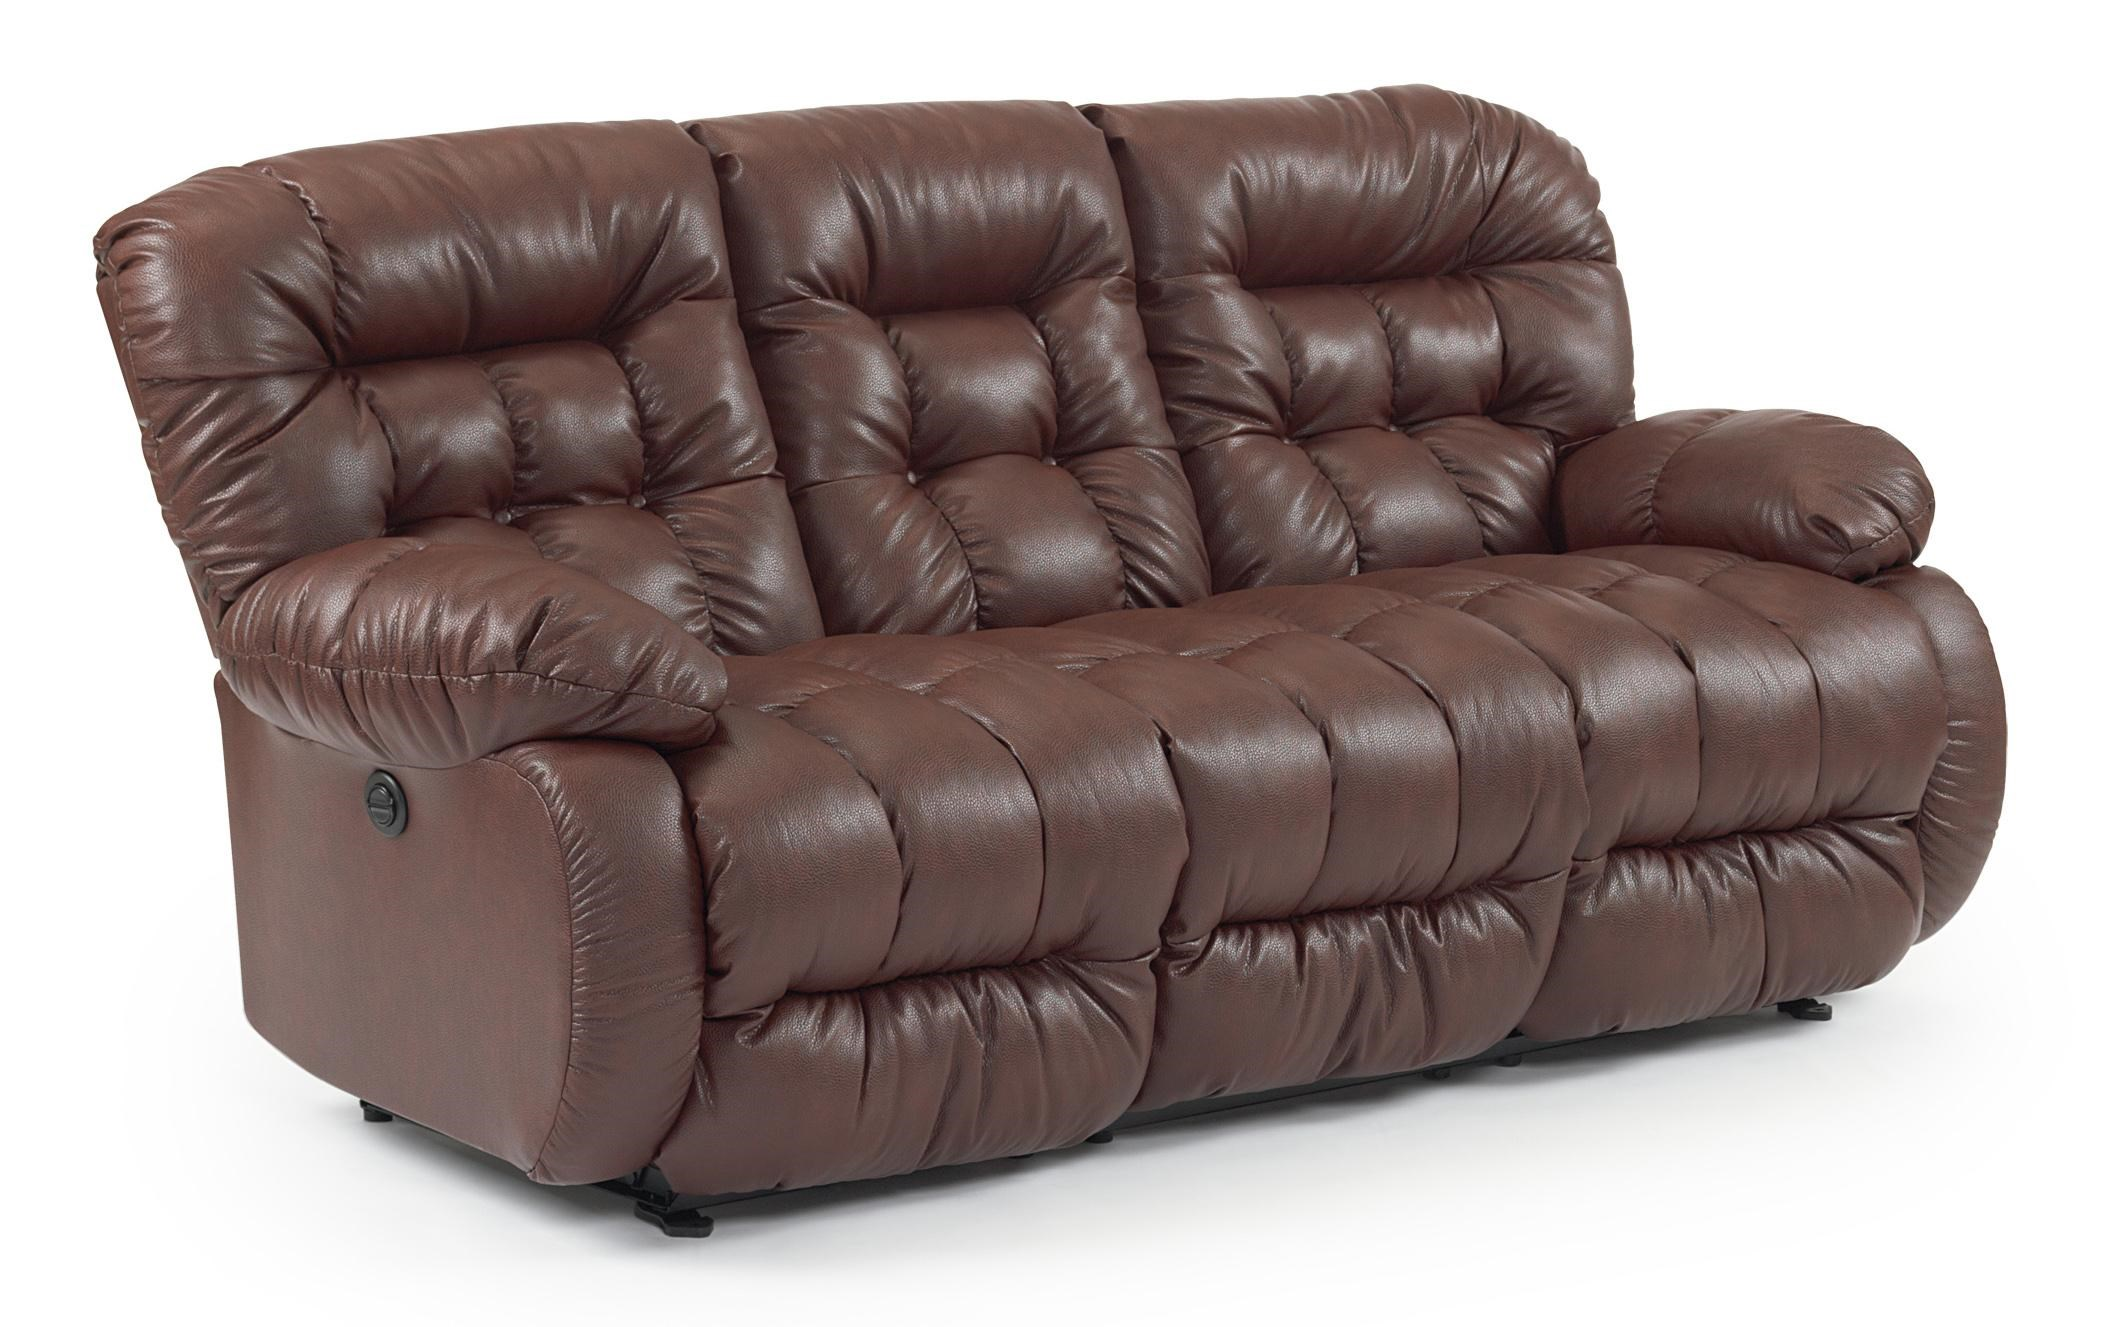 Best Home Furnishings Plusher Space Saver Reclining Sofa  sc 1 st  Wayside Furniture : best reclining sofas - islam-shia.org